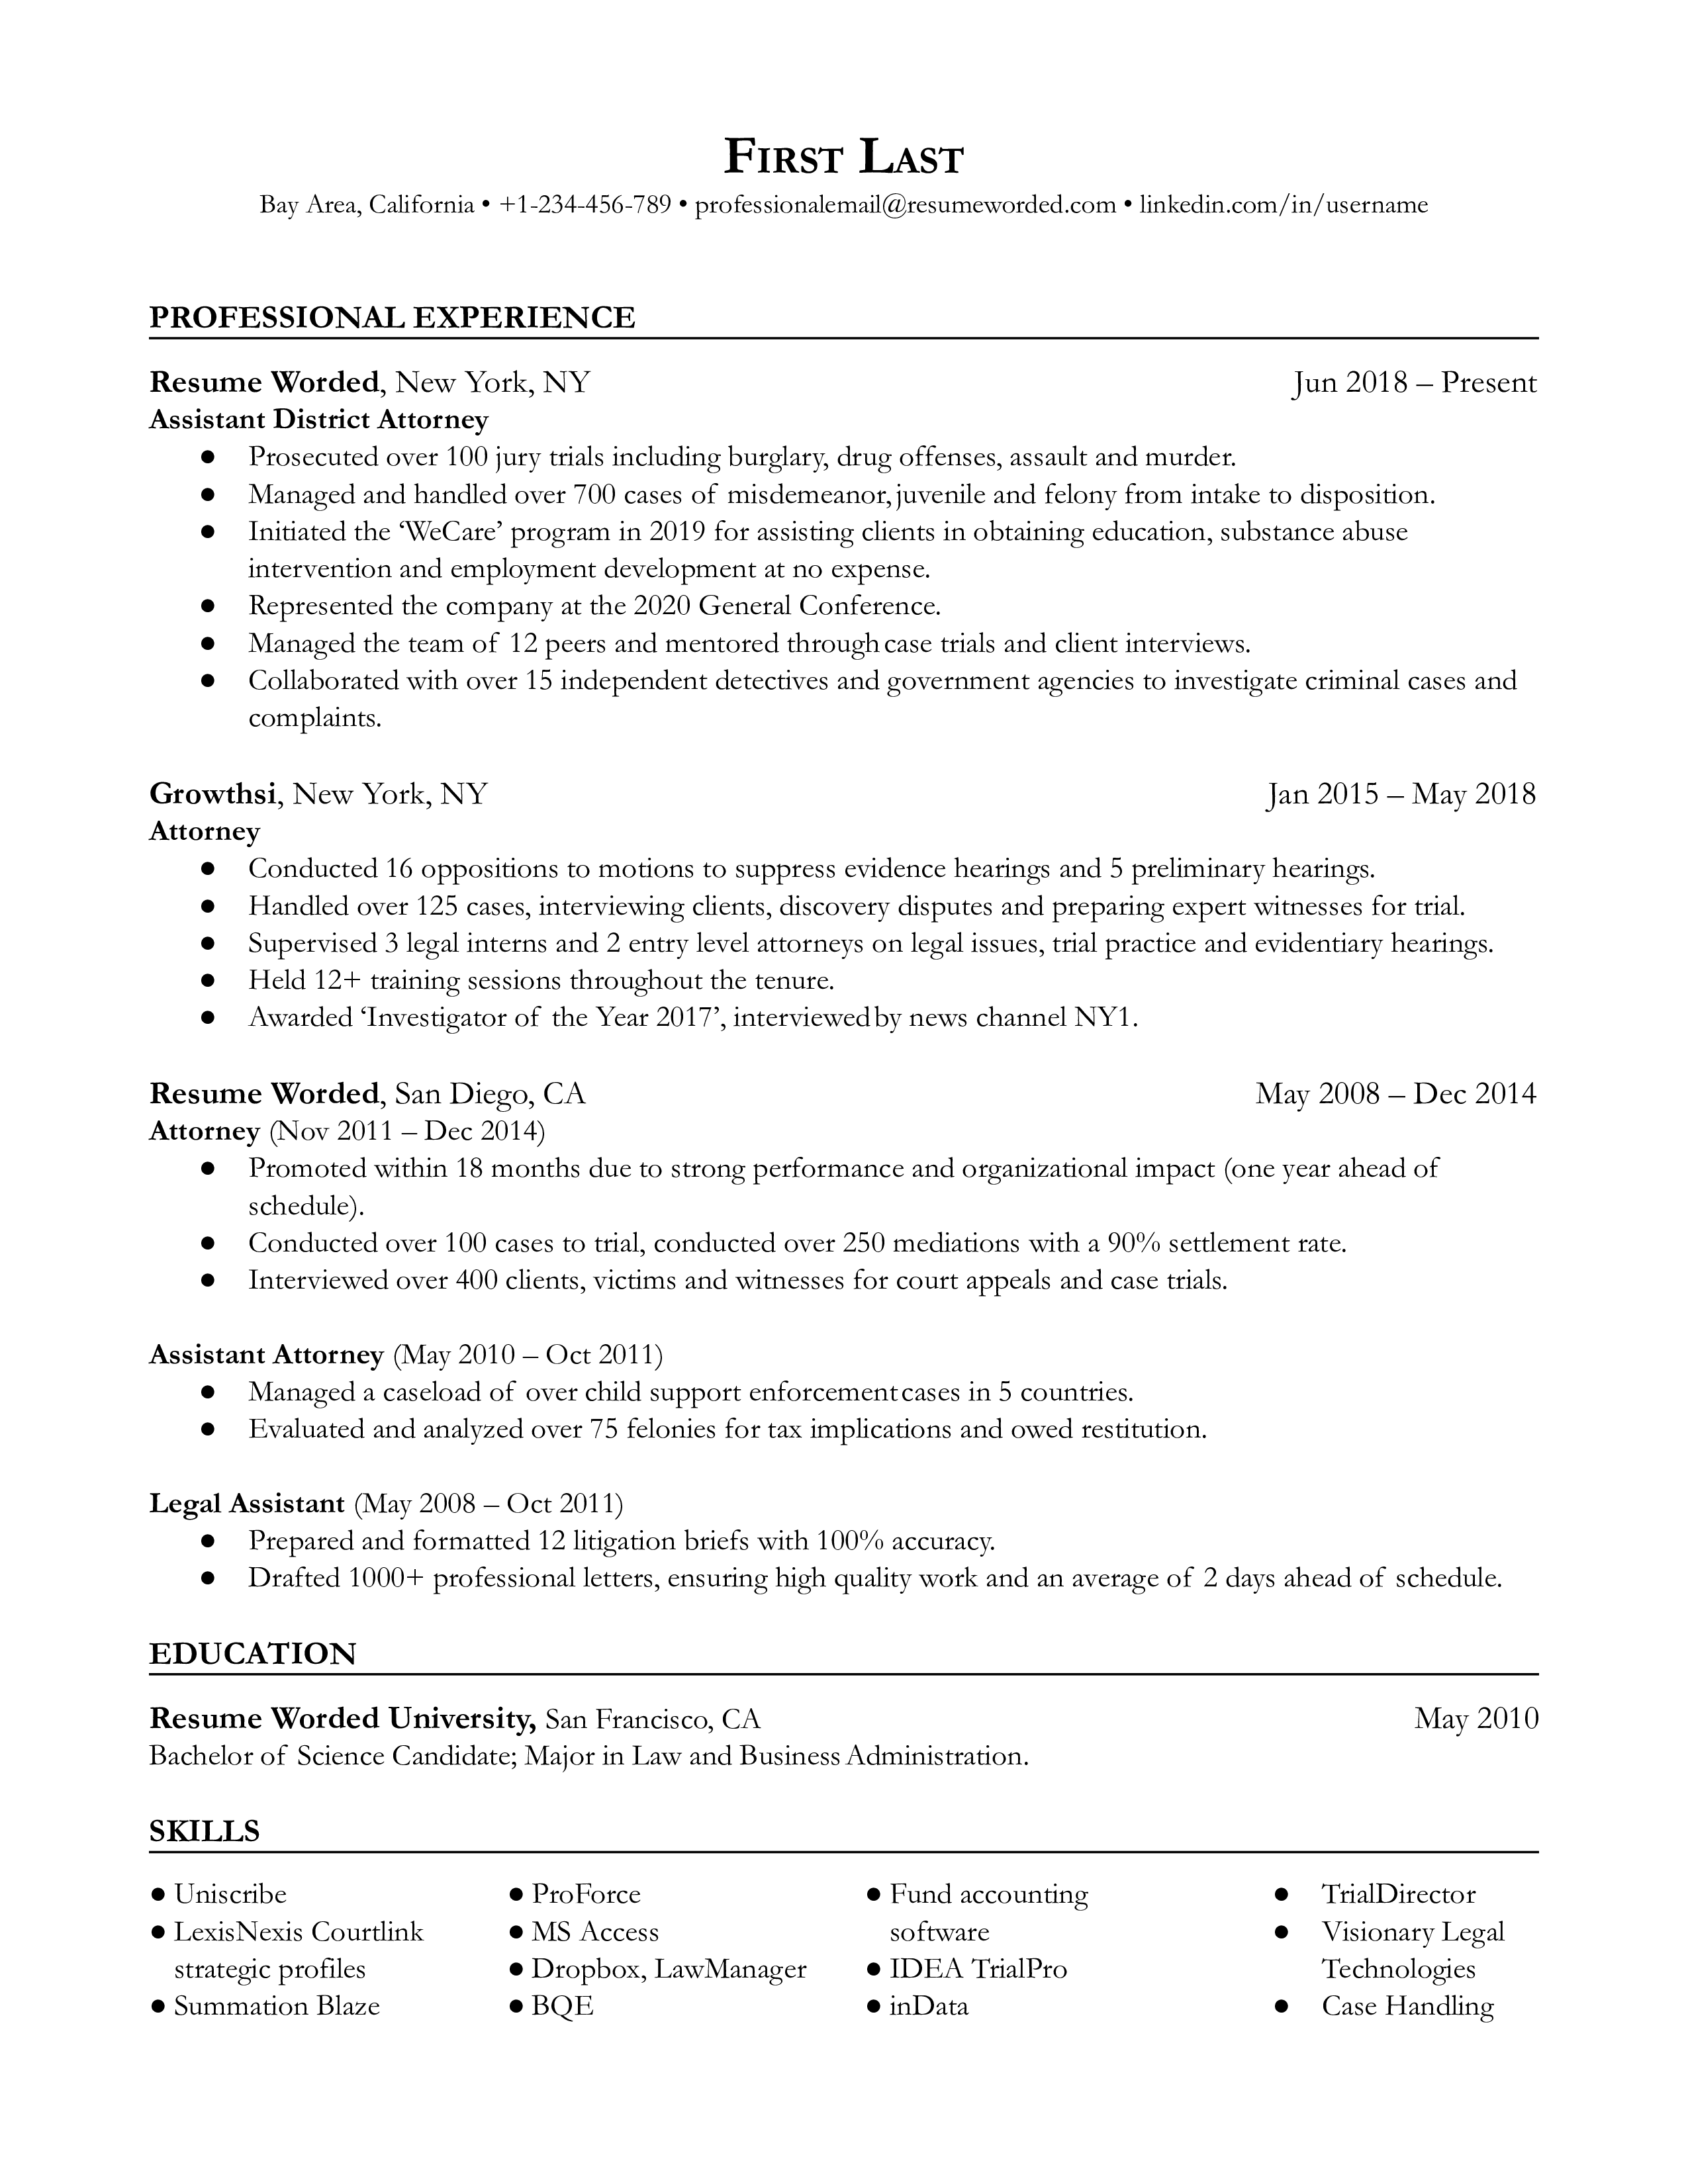 Experienced Attorney Resume Example For 2021 Resume Worded